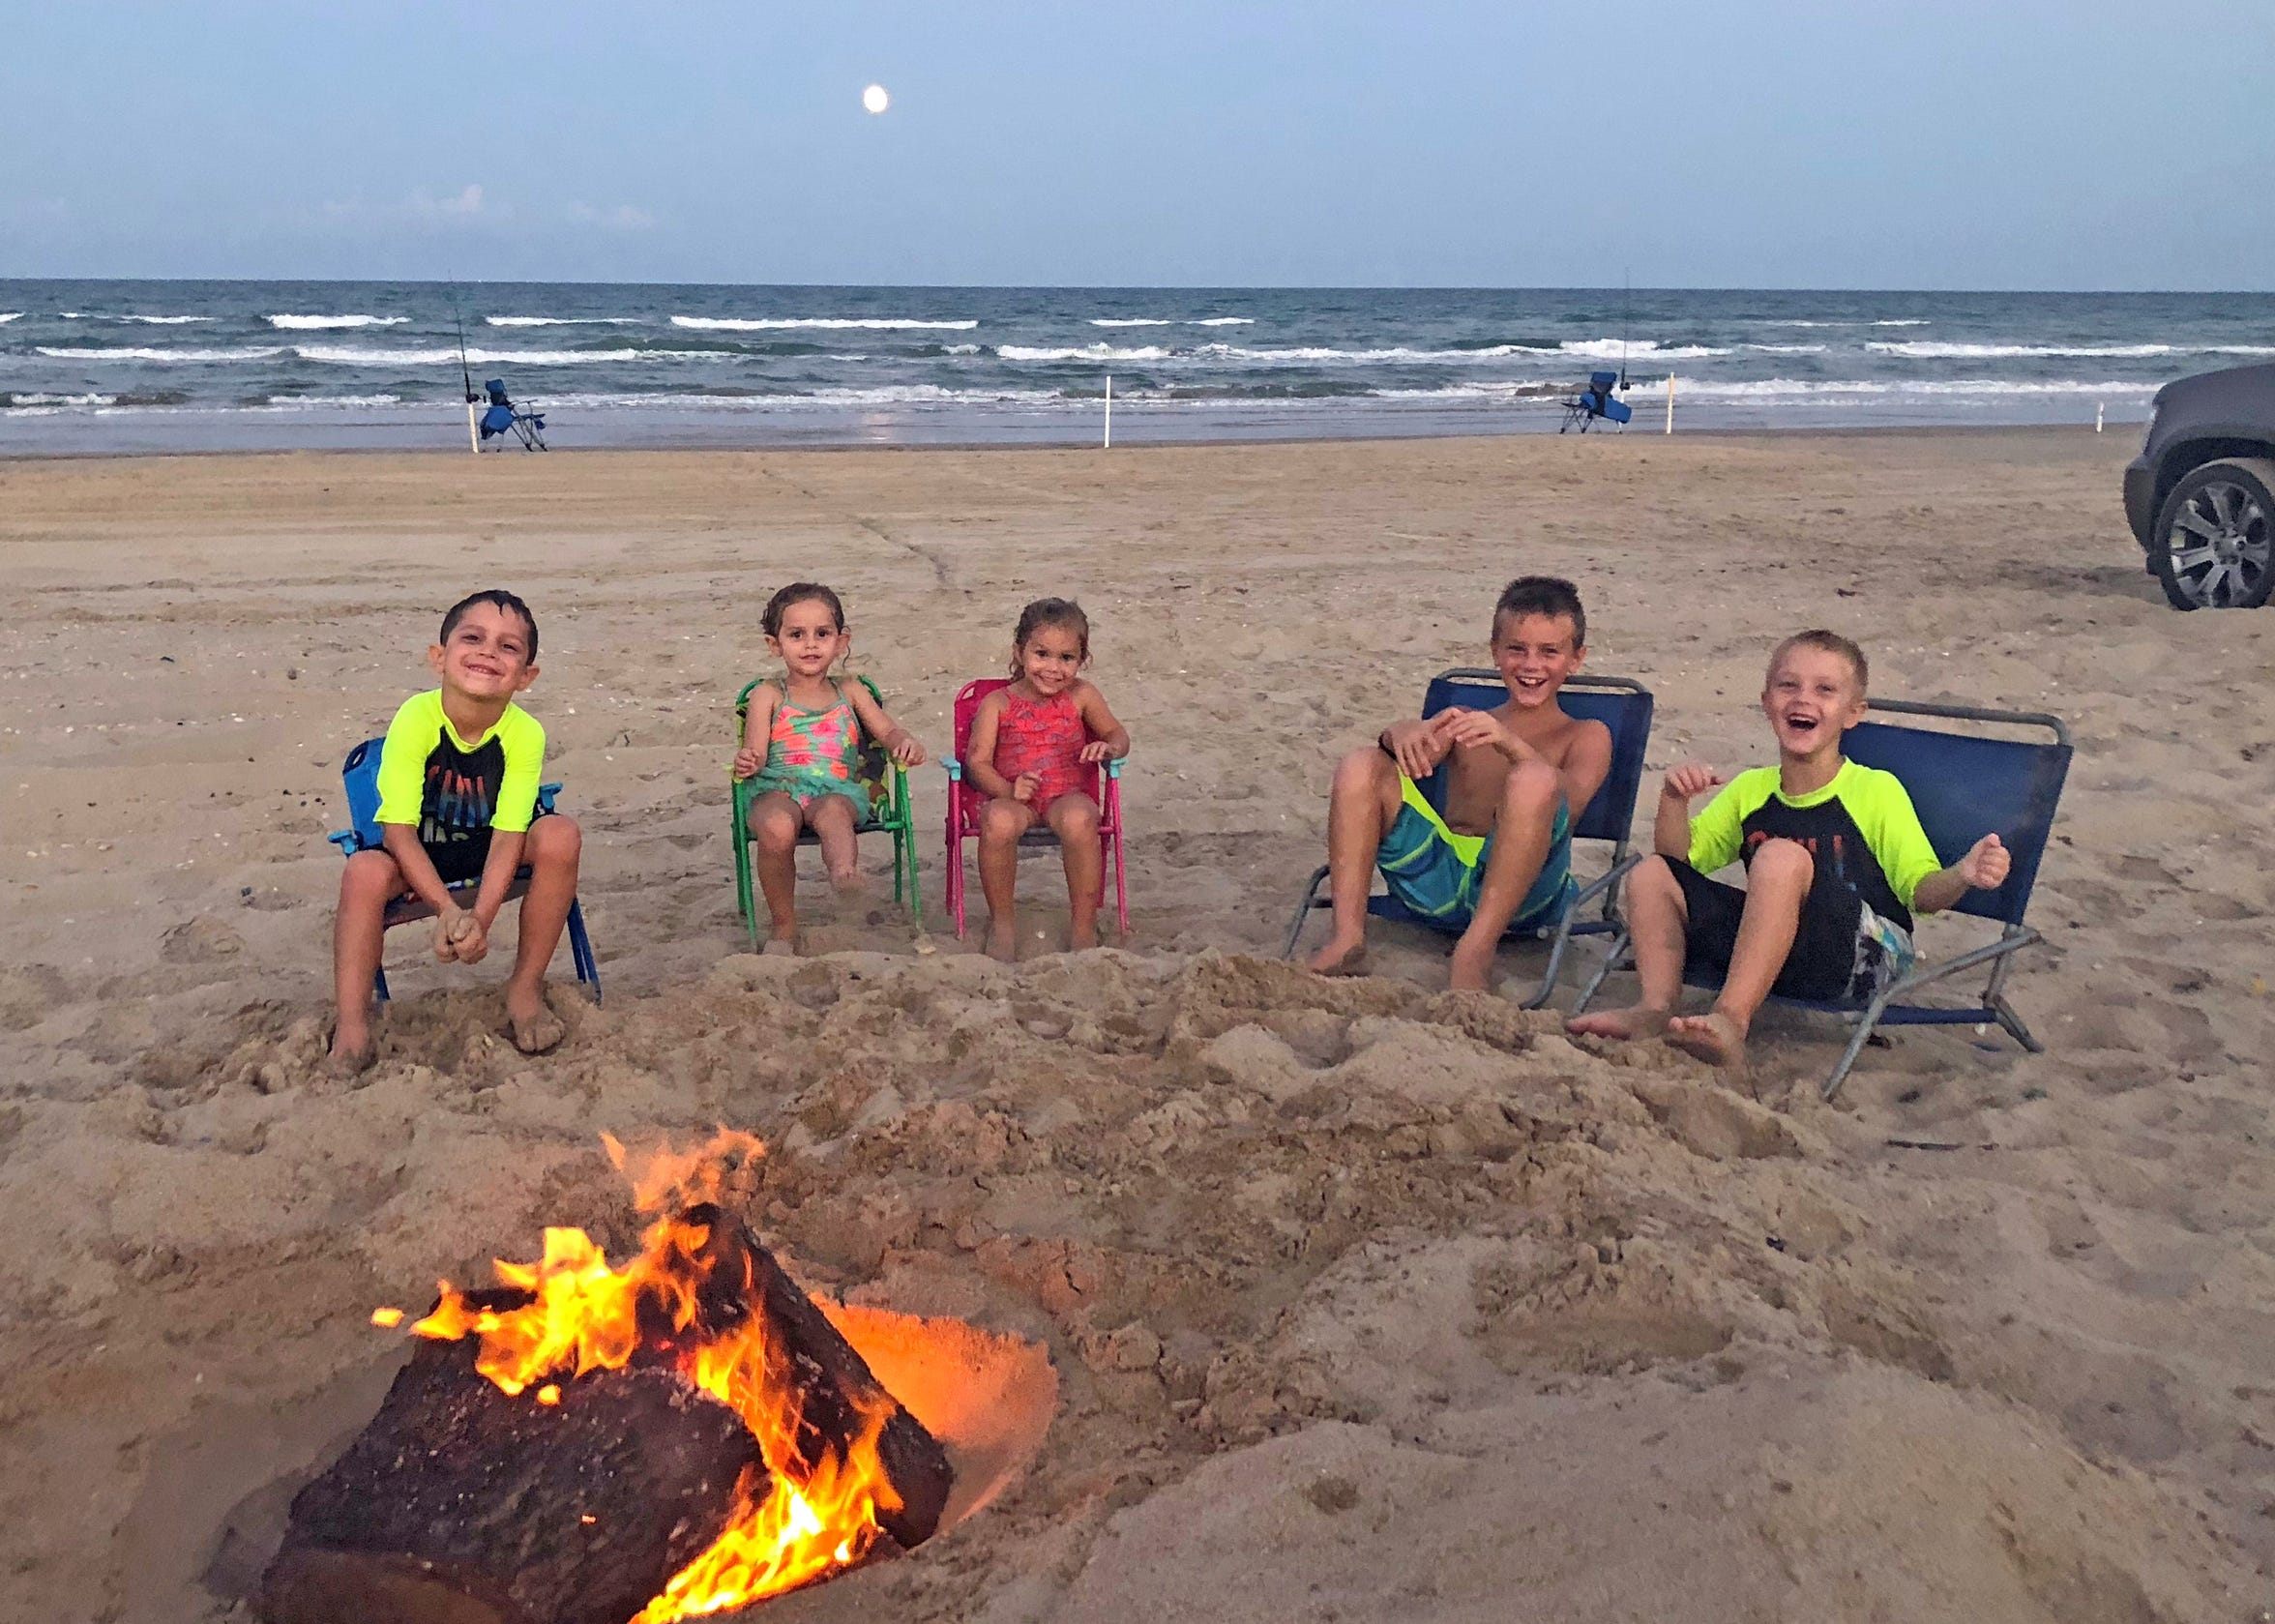 Josh and Amber Rieder of Taft have made beach camping and shark fishing a family affair. Their kids range in age from 10 to 2.